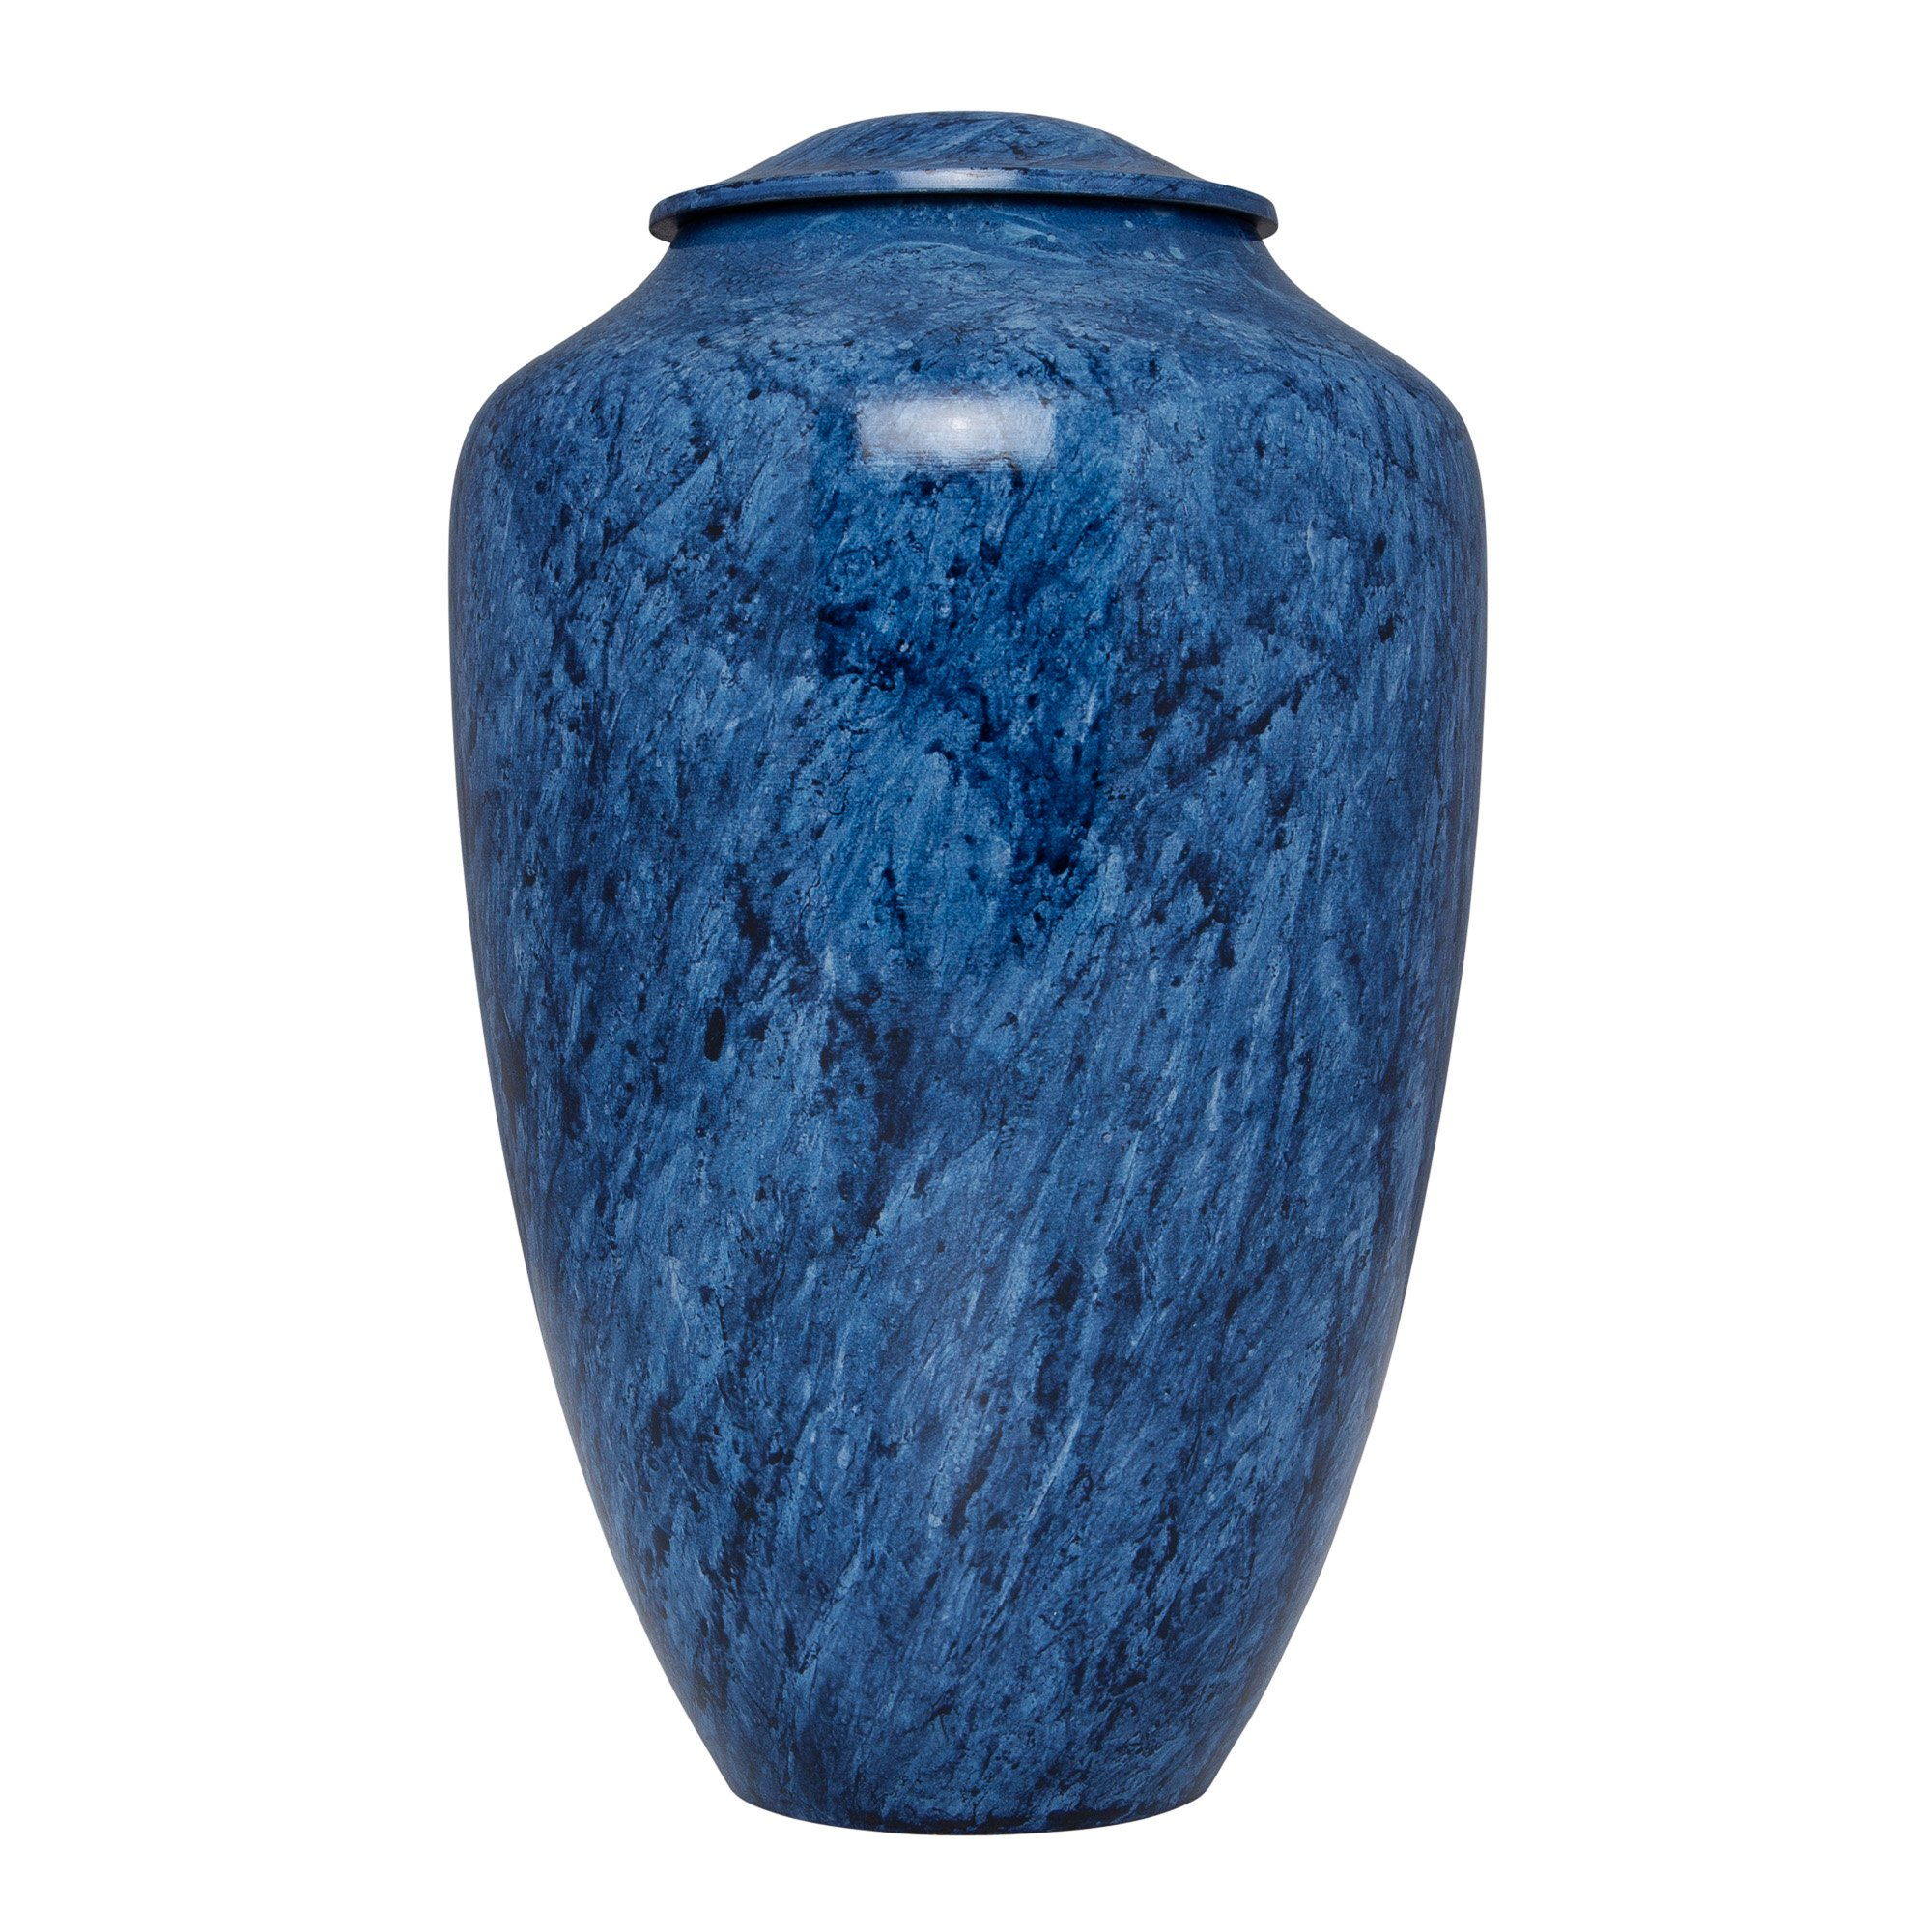 Blue Funeral Urn by Liliane Memorials - Cremation Urn for Human Ashes - Hand Made in Brass - Suitable for Cemetery Burial or Niche - Large Size fits remains of Adults up to 200 lbs - Ambleu Model